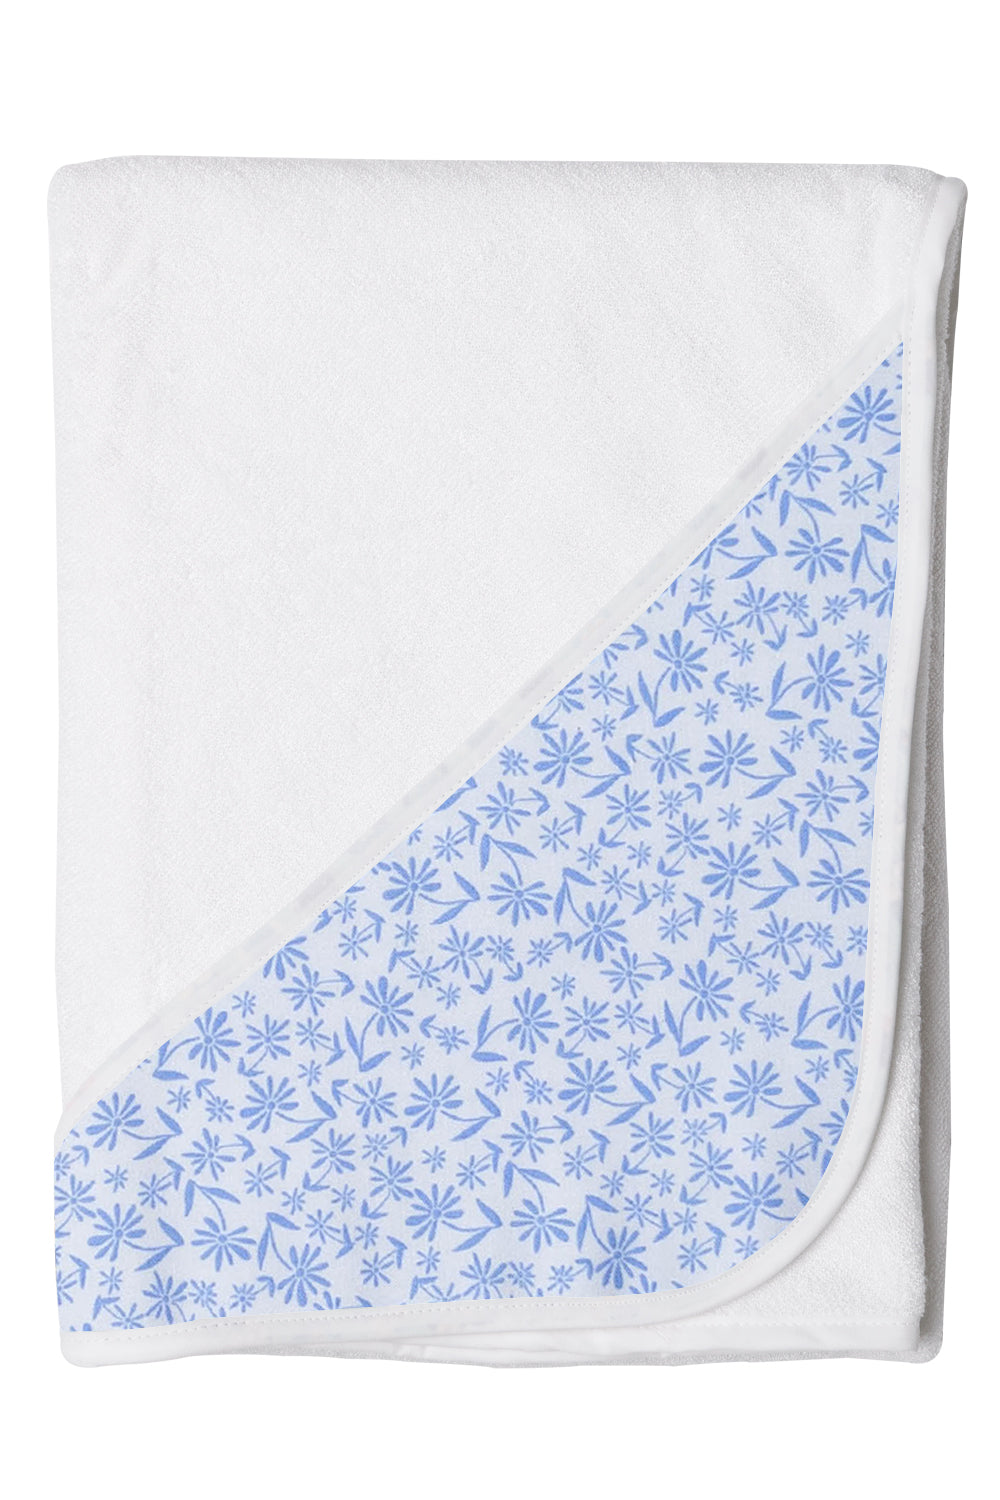 Hands-free Baby Bath Towels with Blue Floral Pattern Hood